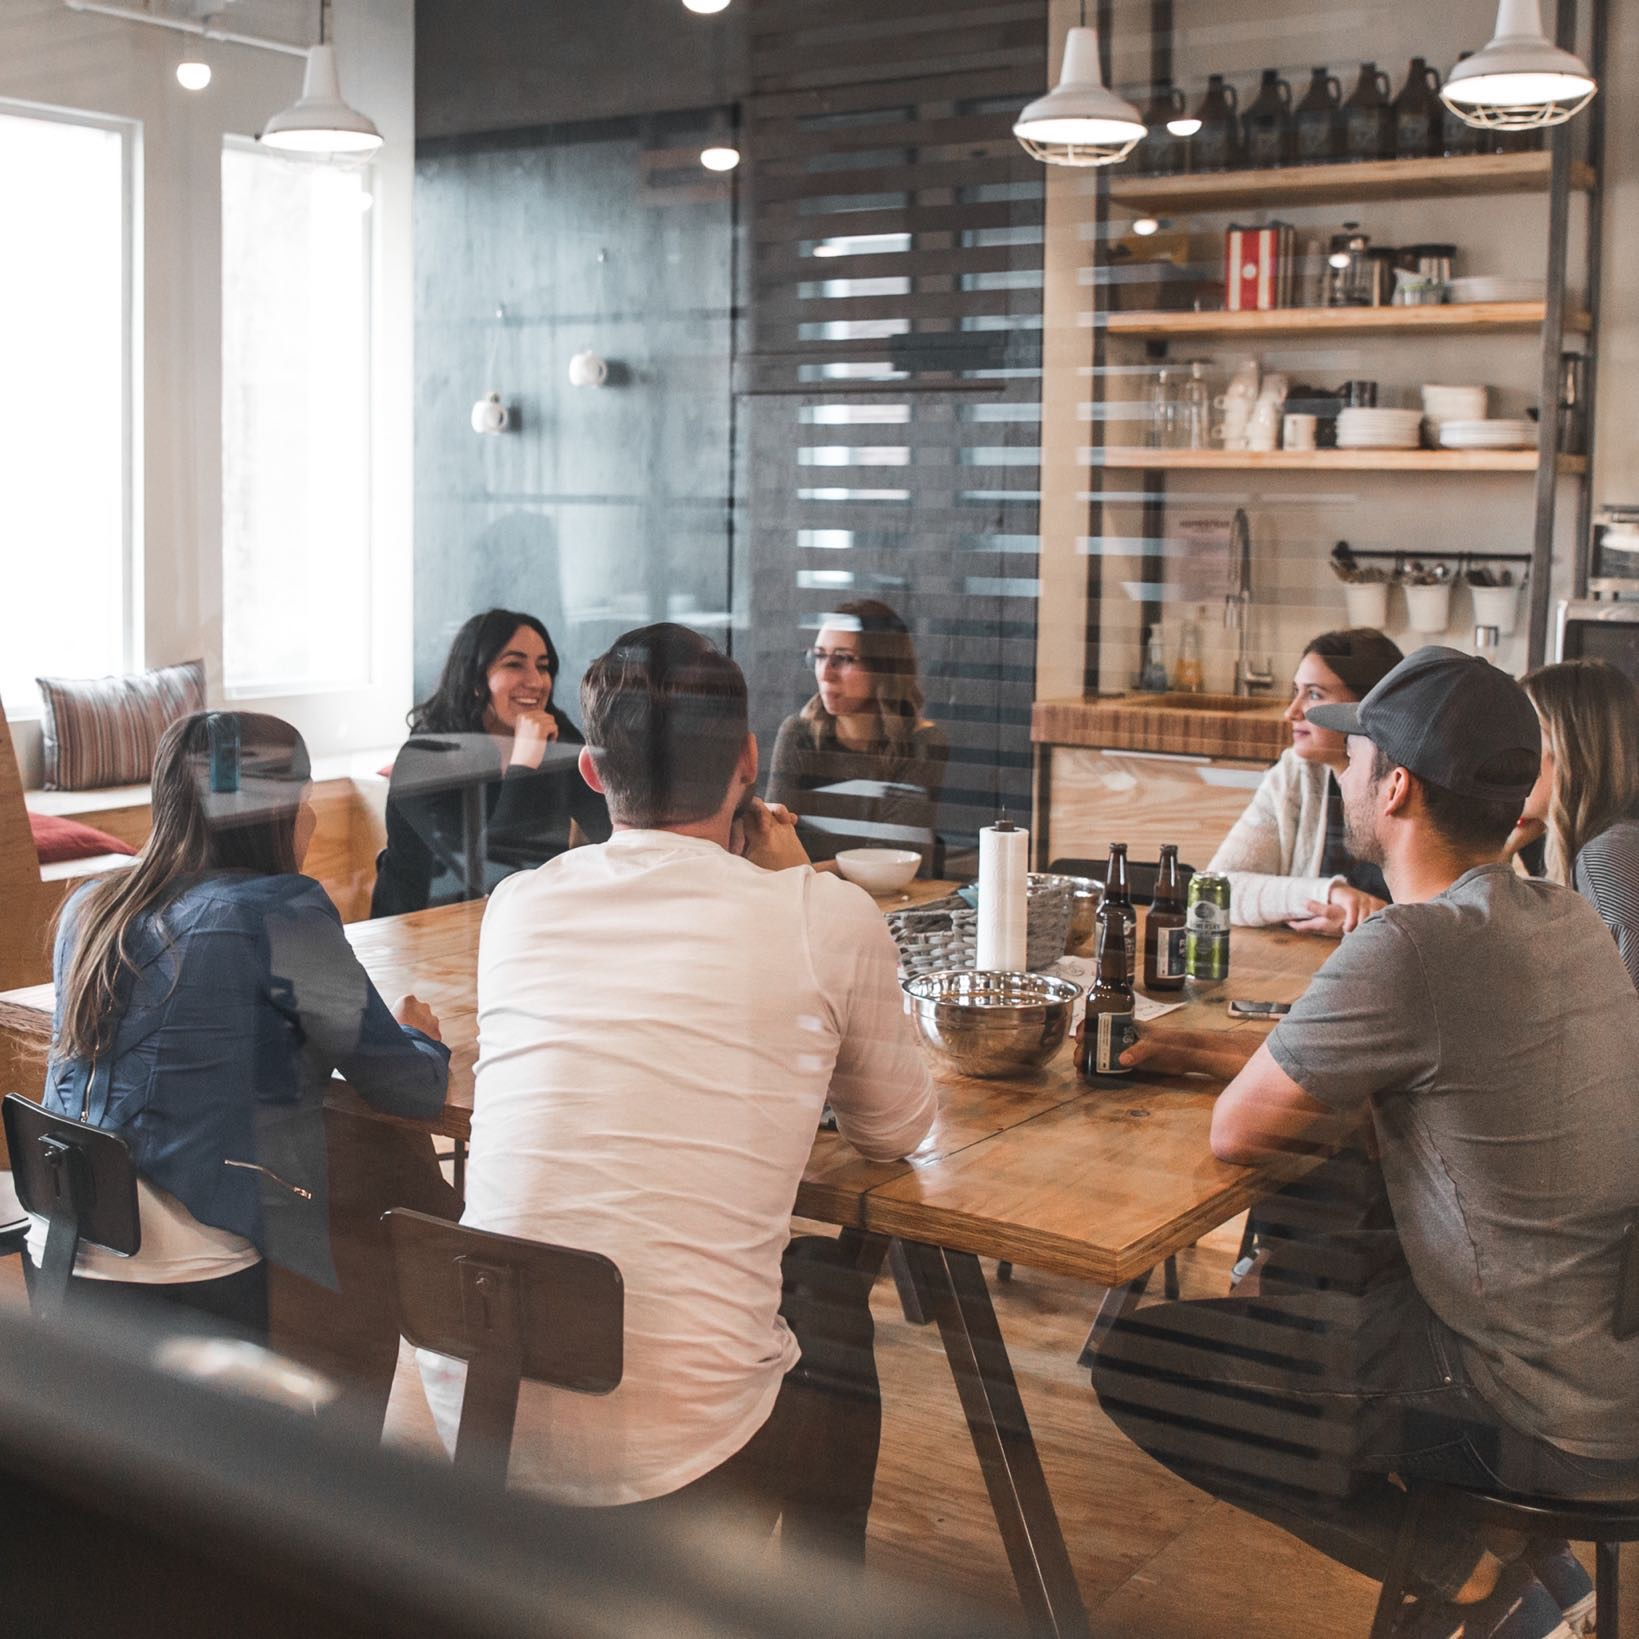 Article: What To Do When You're Brushed Off at Strategy Meetings